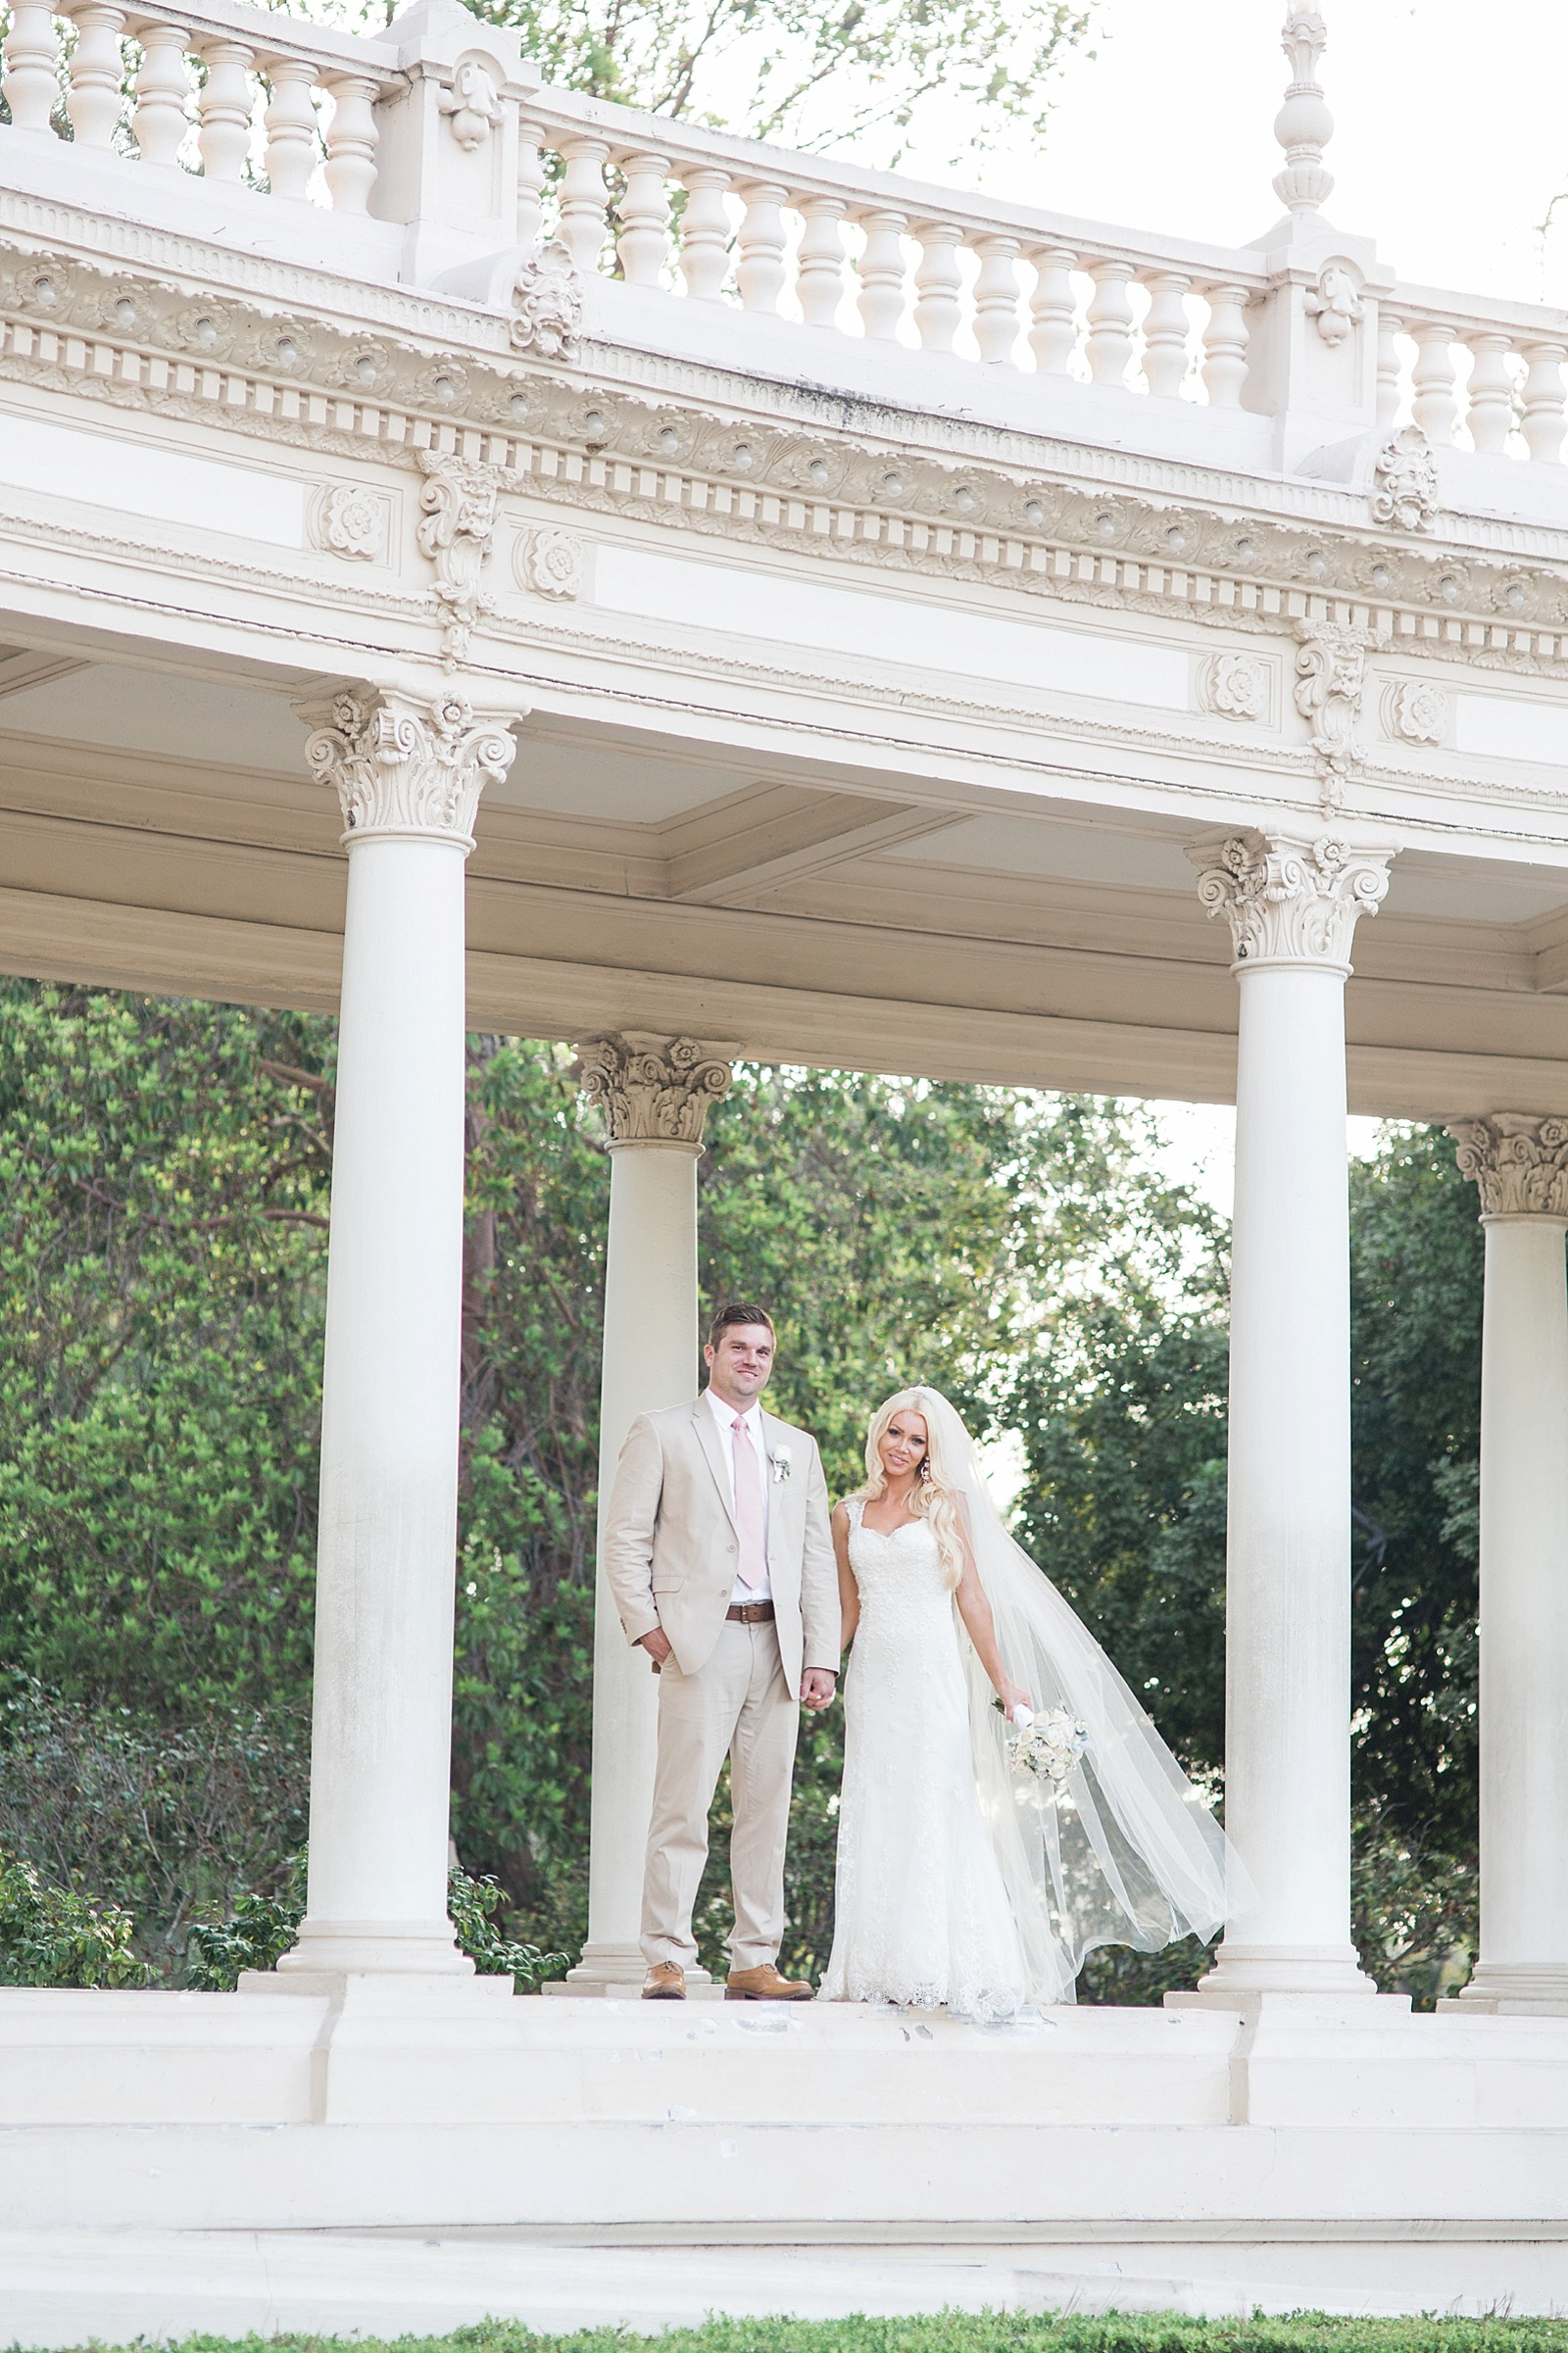 diana-elizabeth-photography-balboa-park-wedding-portraits-photography_0206